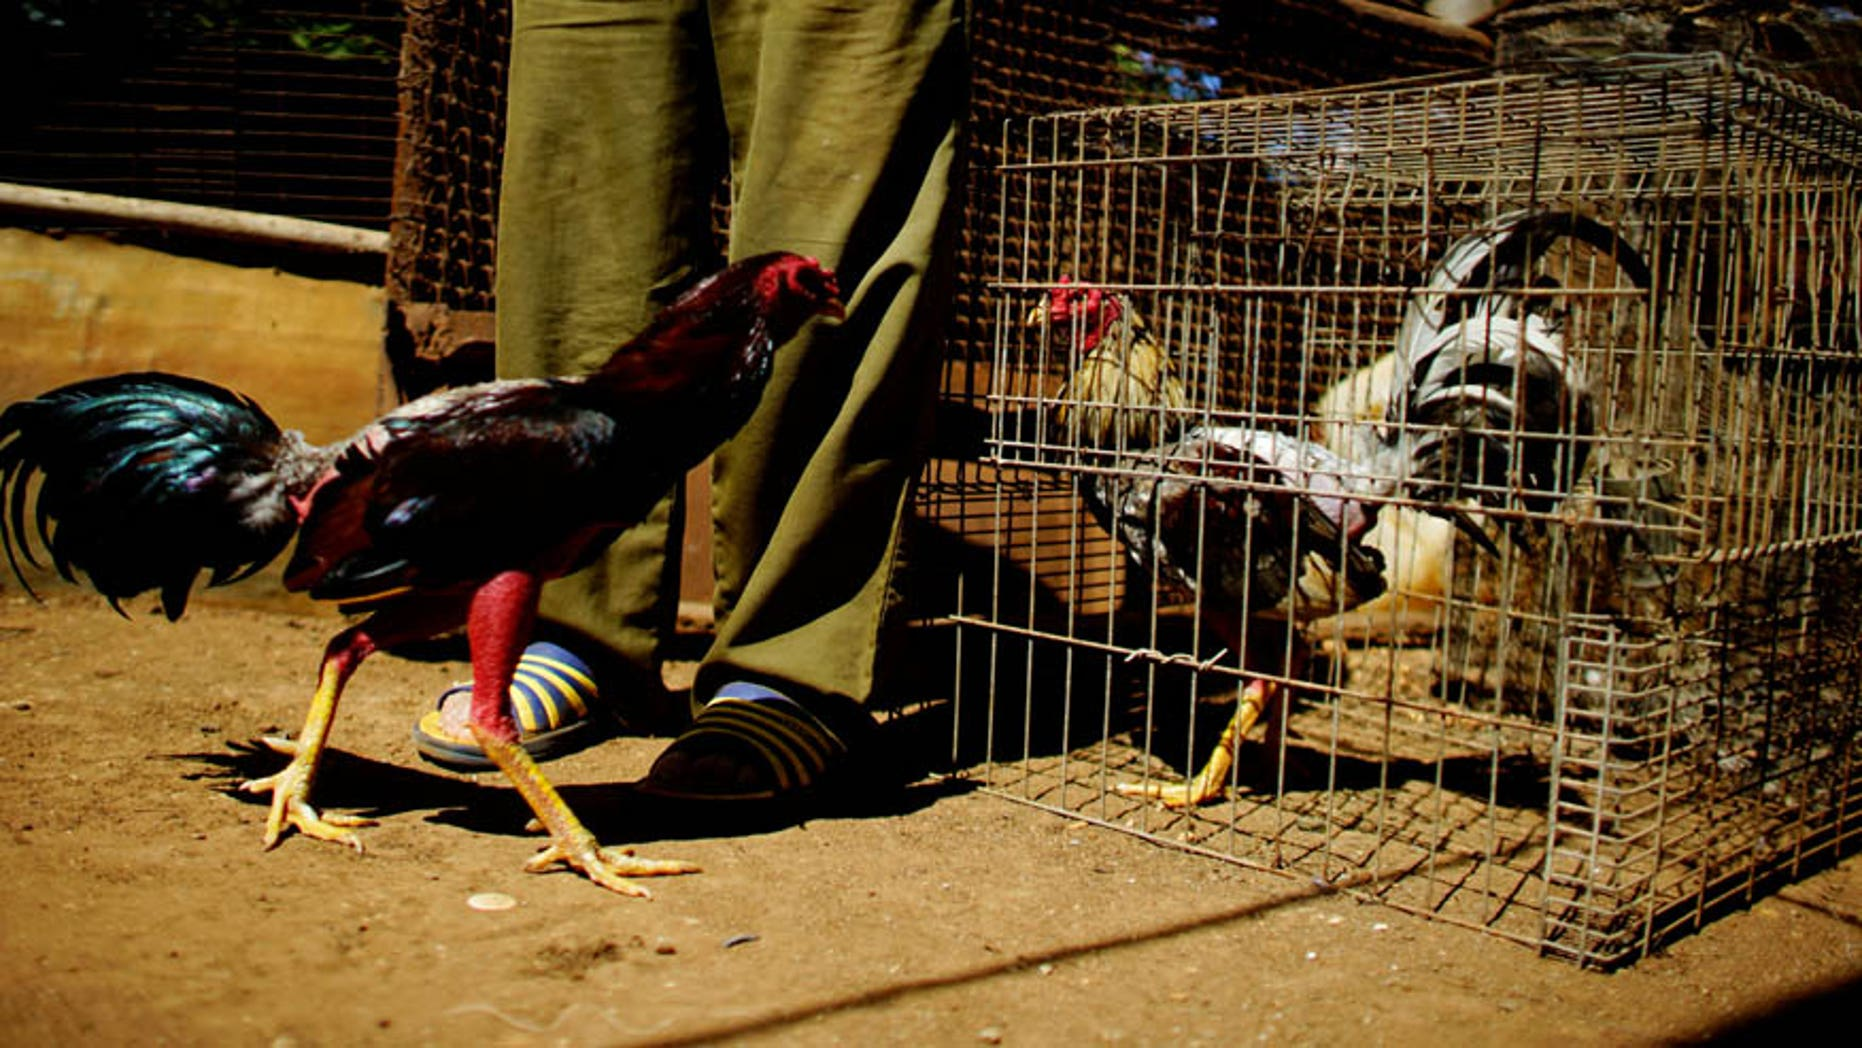 As many as 141 roosters were confiscated.